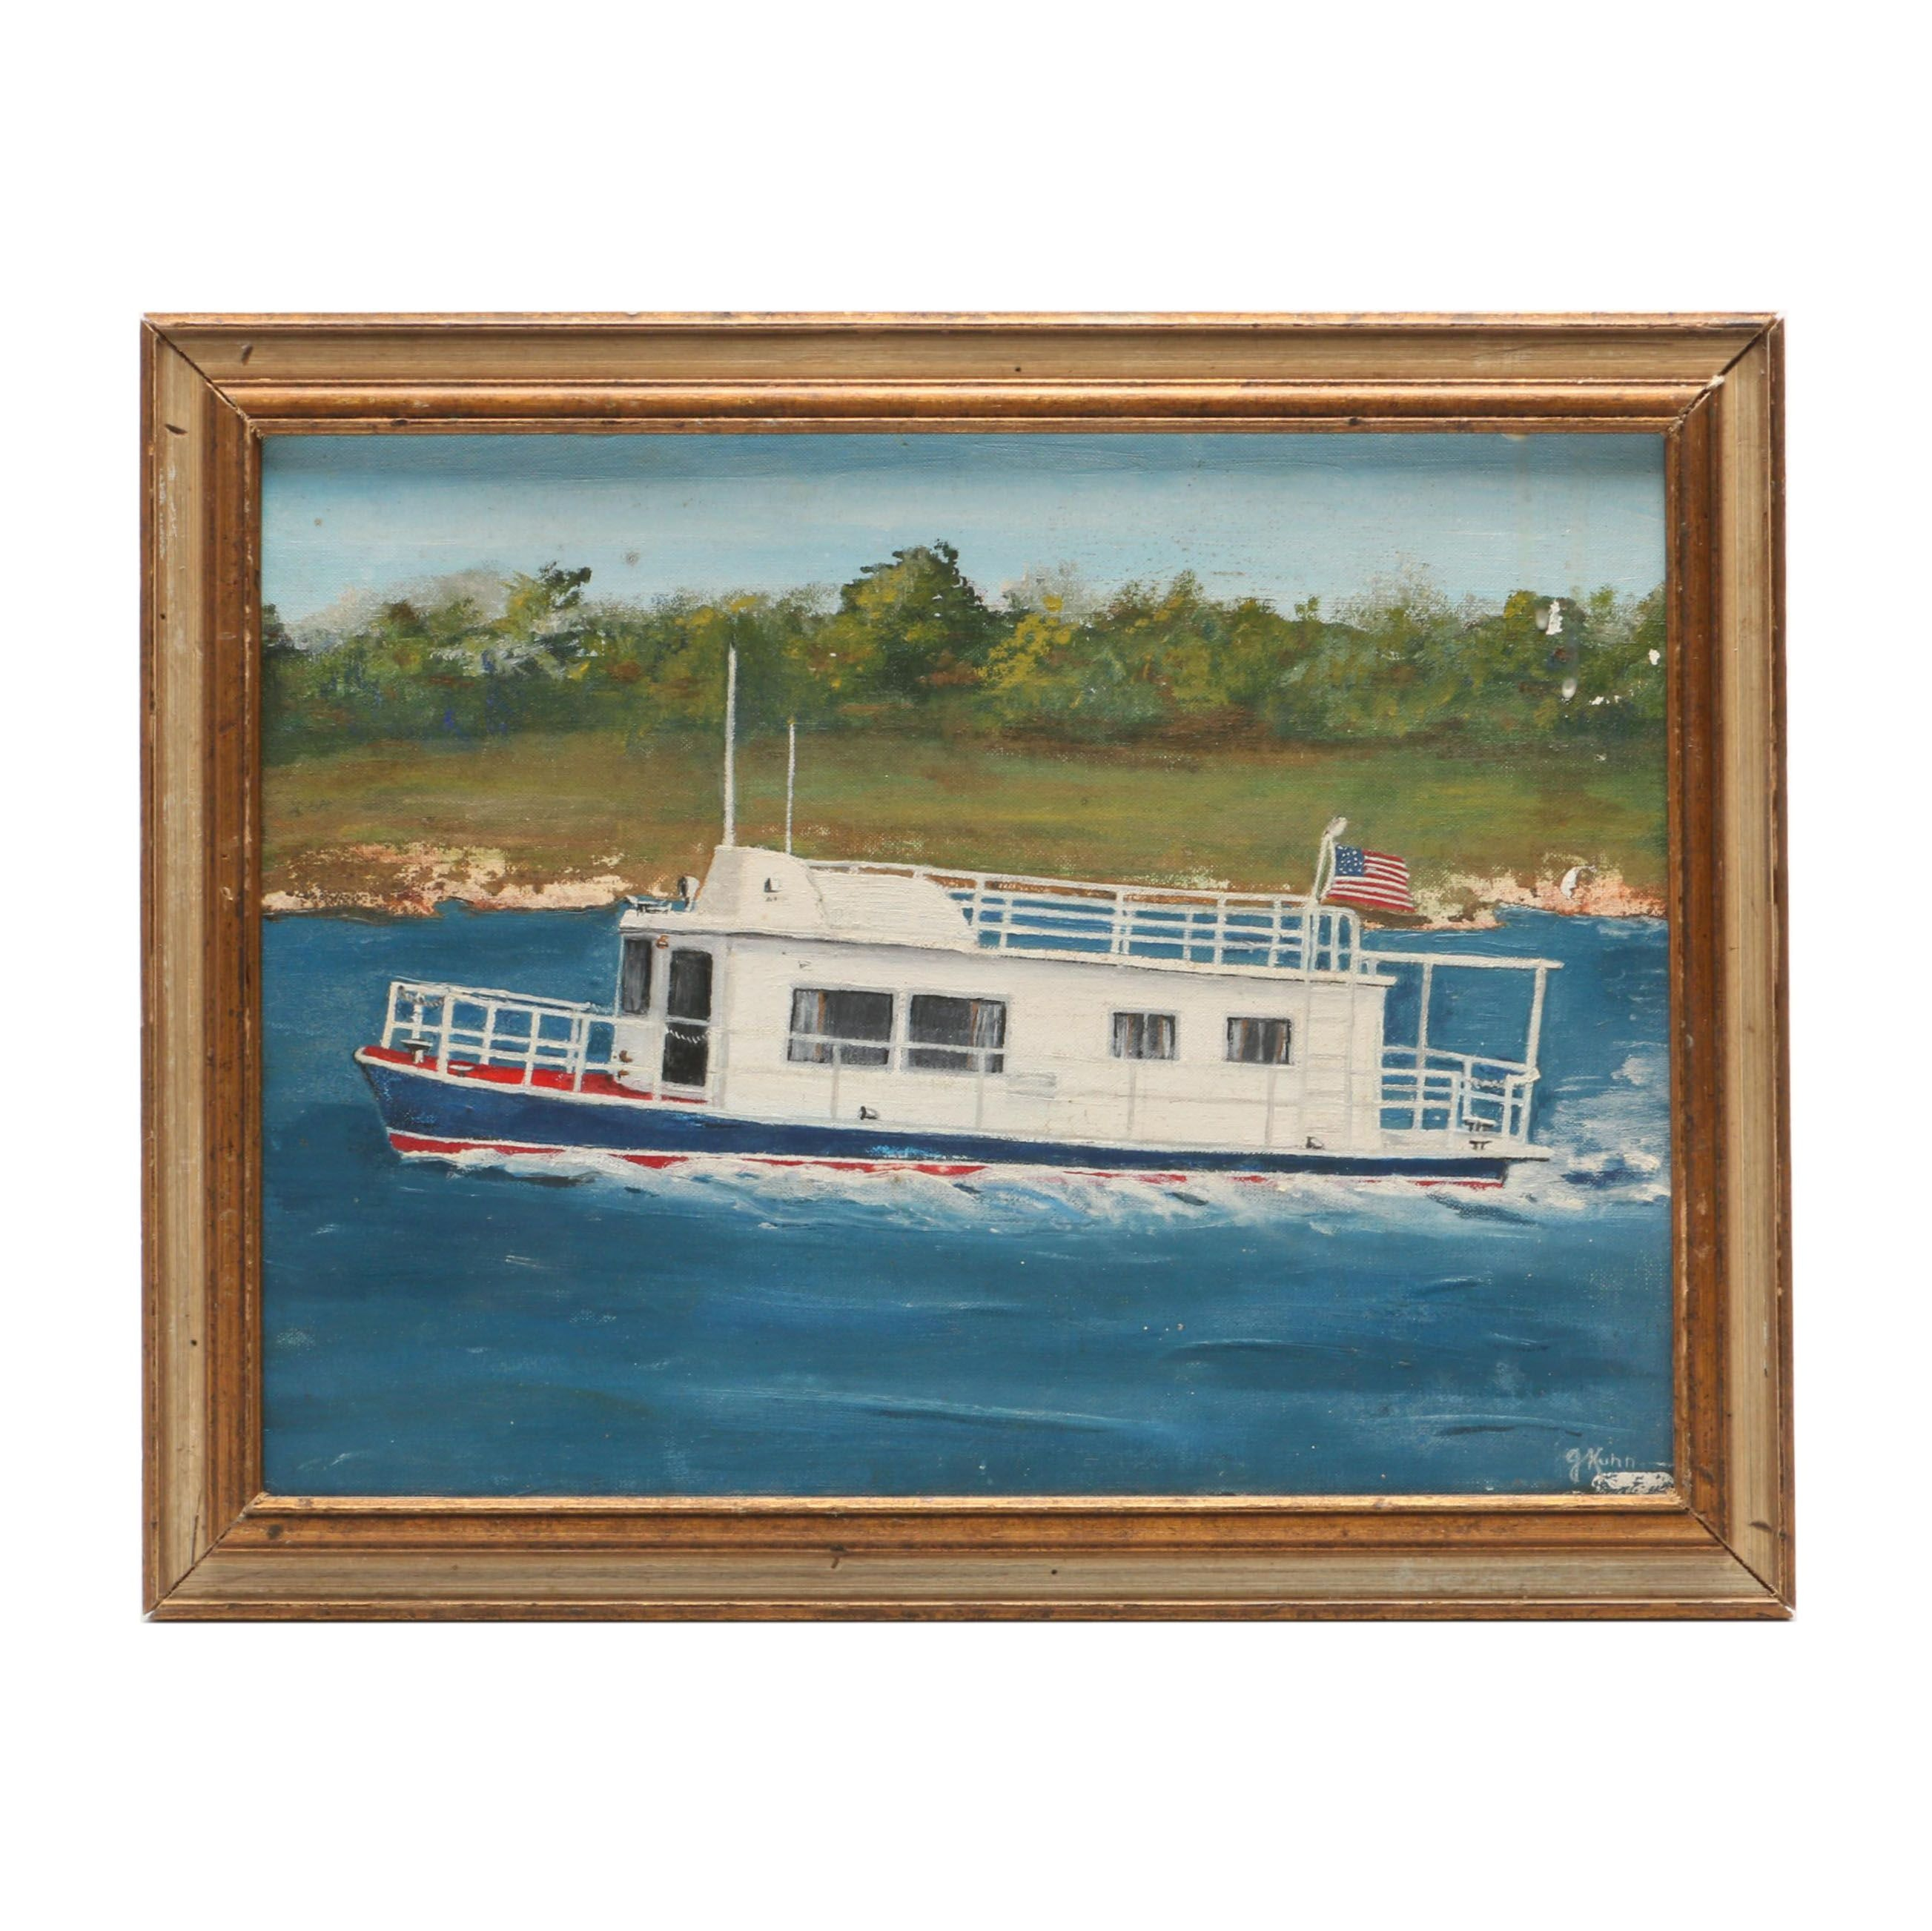 G. Kuhn Oil Painting of Riverboat